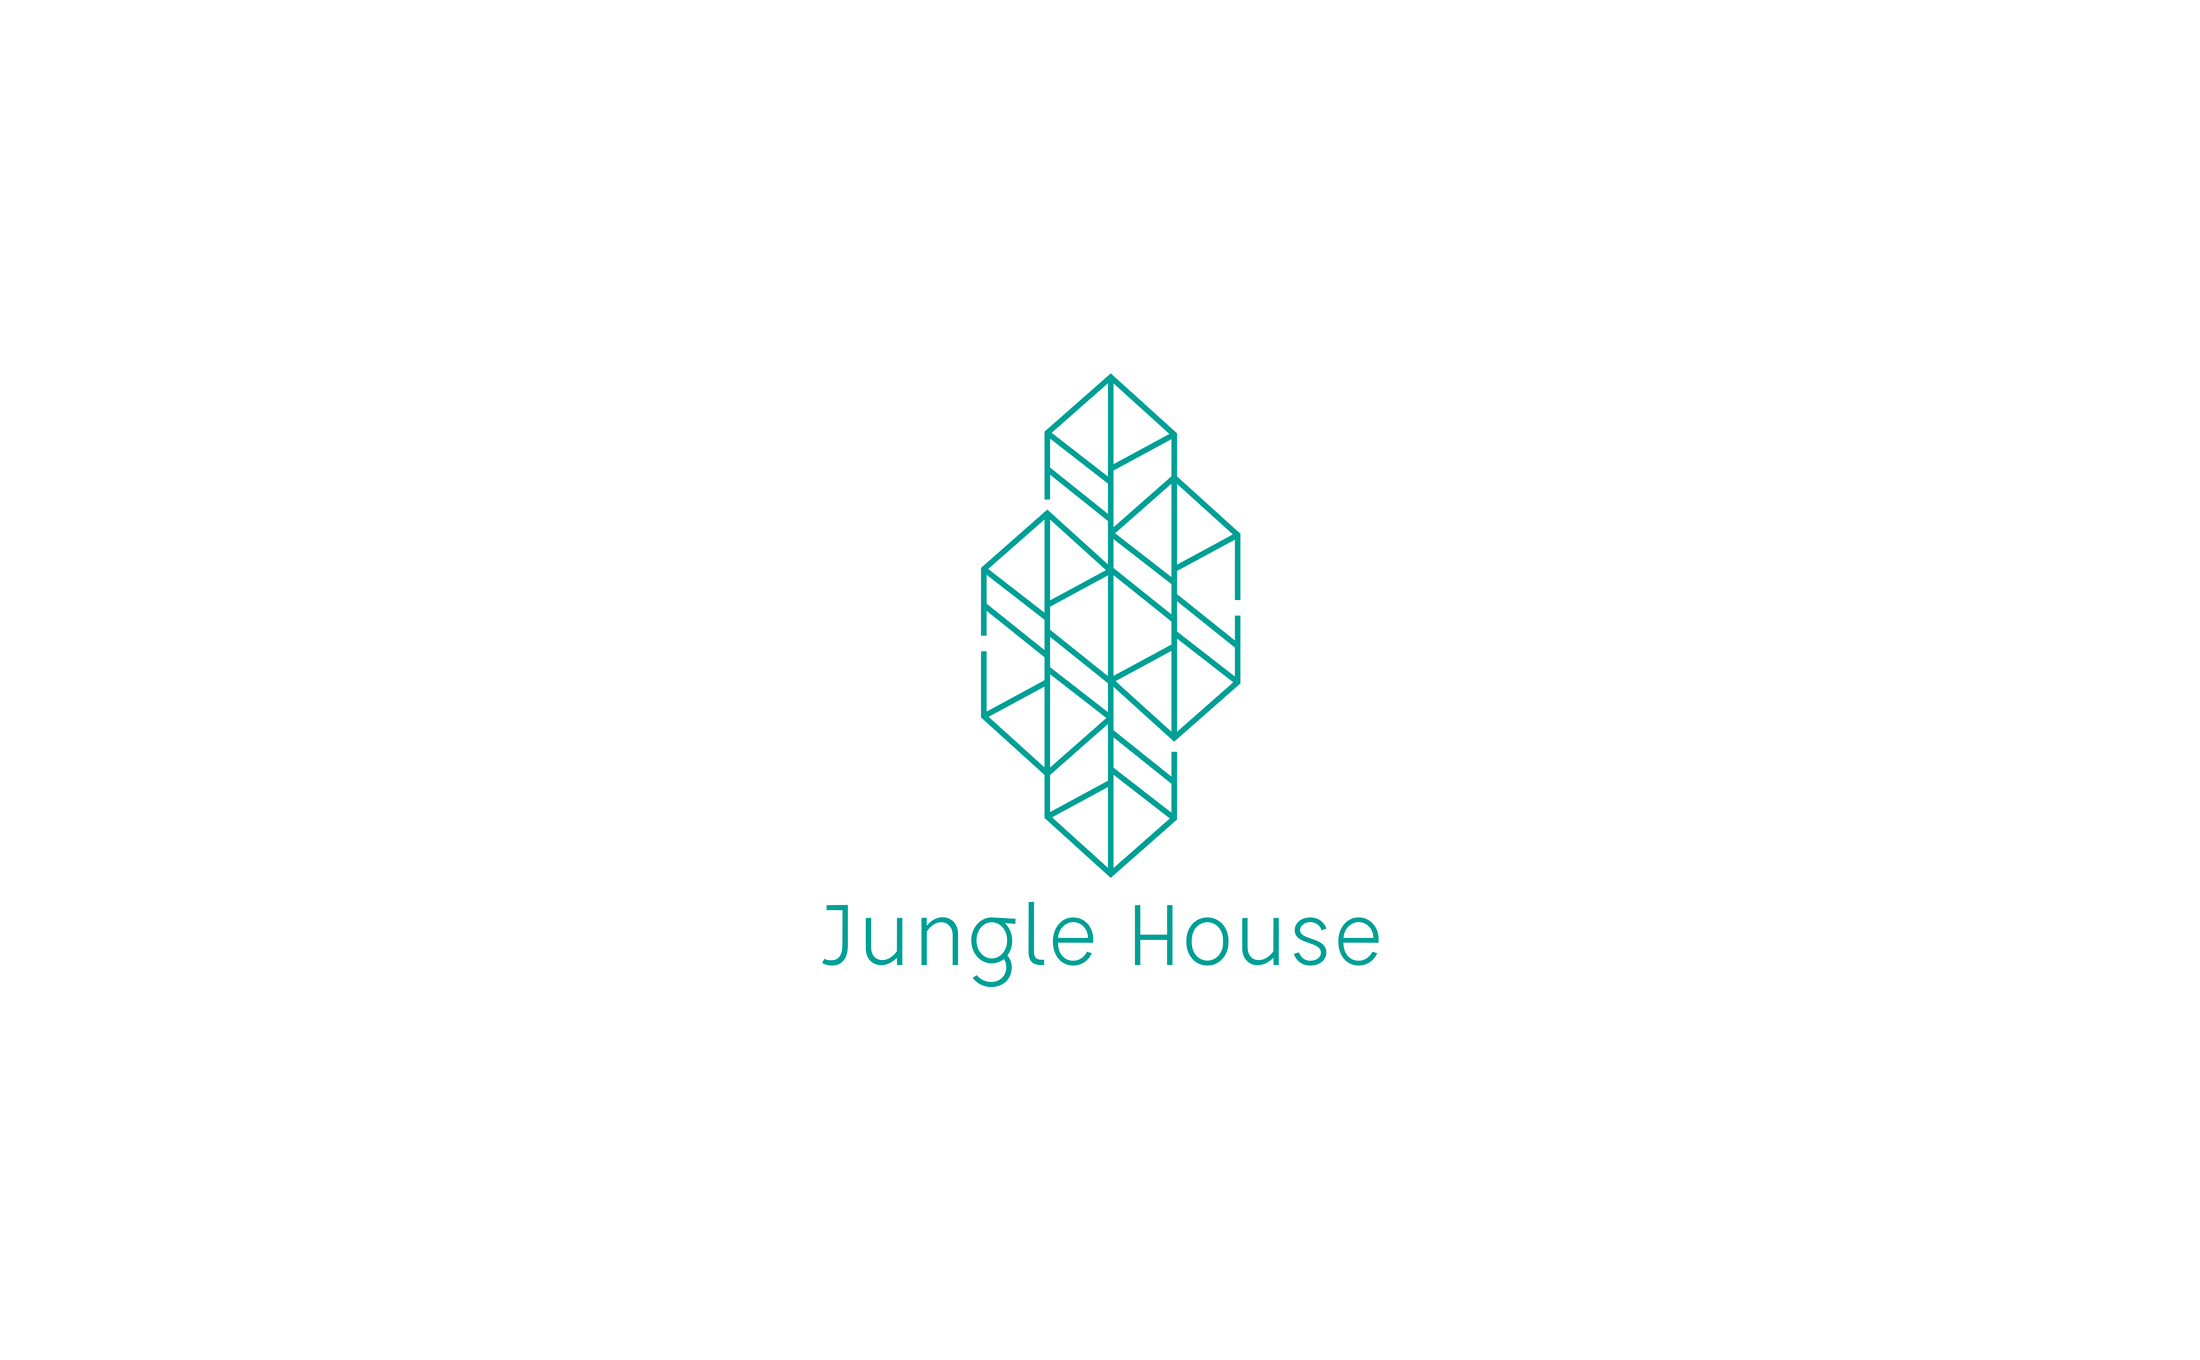 jungle_house_logo_positive_version